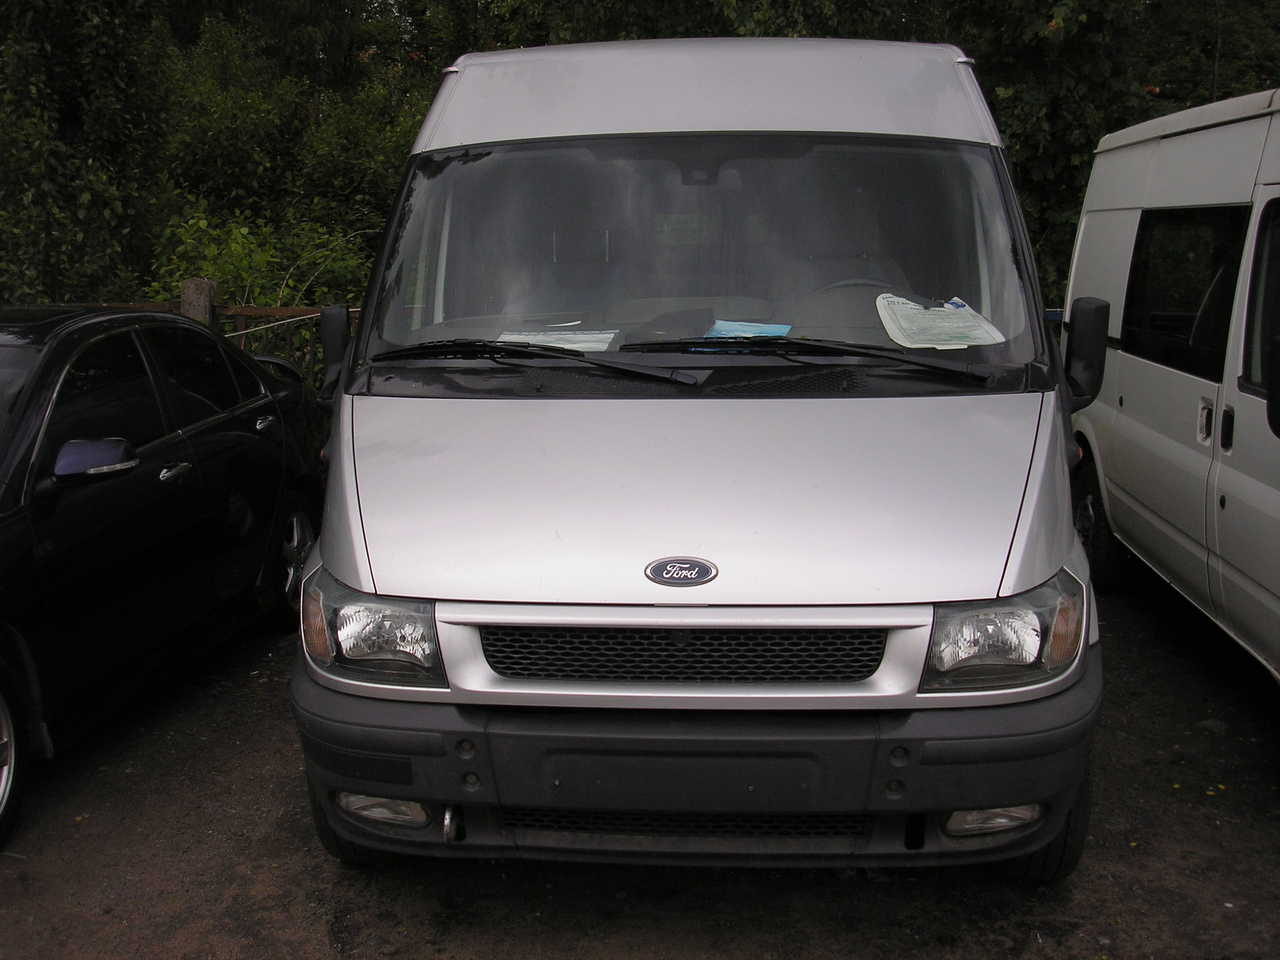 used 2002 ford transit photos 2 4 diesel fr or rr. Black Bedroom Furniture Sets. Home Design Ideas